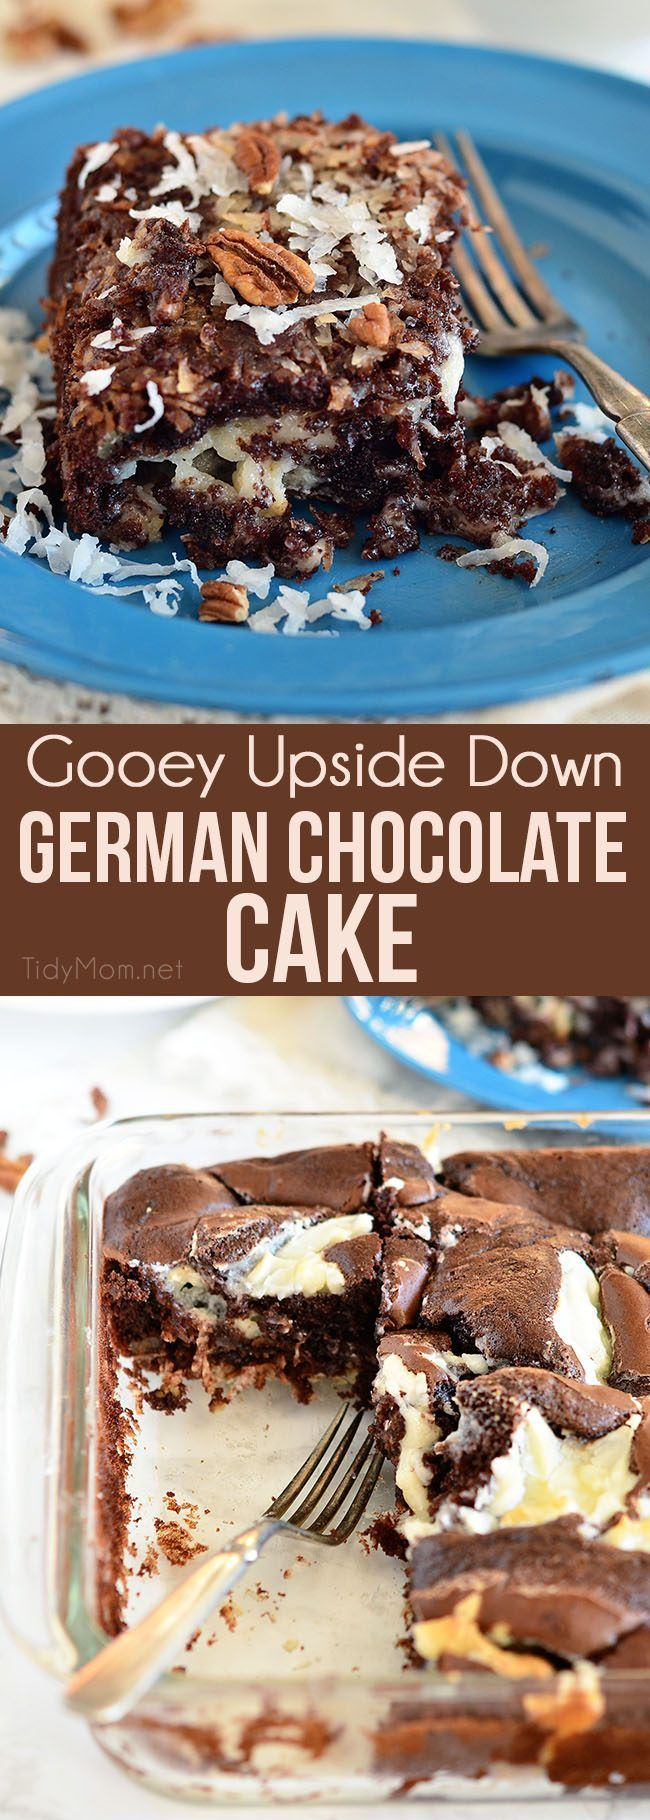 Gooey Upside Down German Chocolate Cake is an easy delicious twist on the traditional German Chocolate Cake. This dessert is gooey, moist, and super simple to throw together thanks to a cake mix. Where it lacks in good looks, it more than makes it up in the yummy department! find the recipe at TidyMom.net